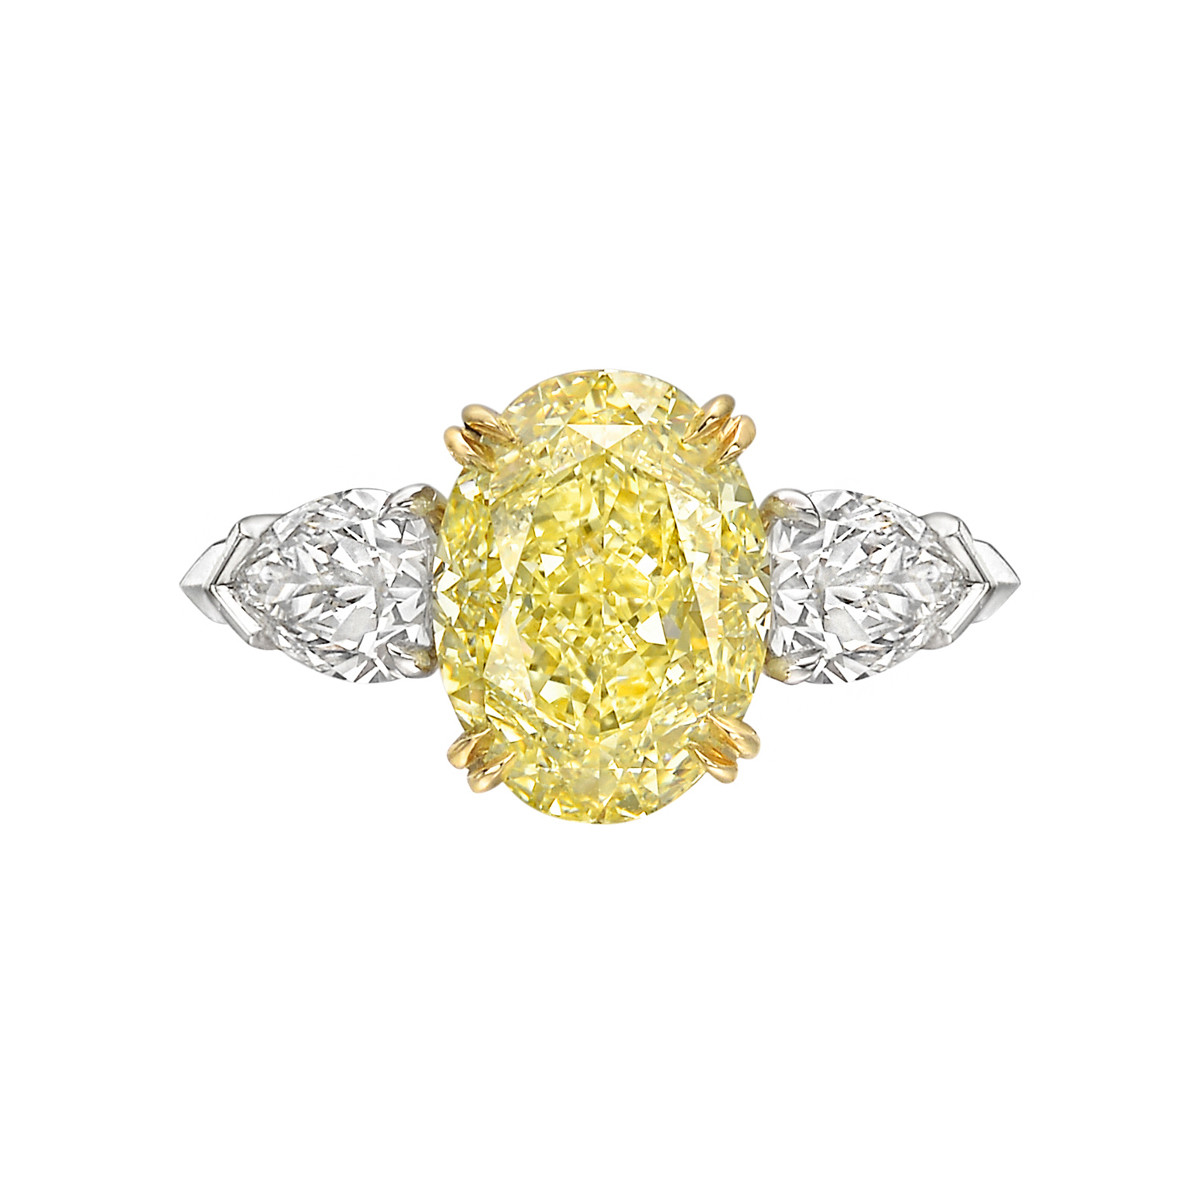 3.26 Carat Fancy Yellow Diamond Ring